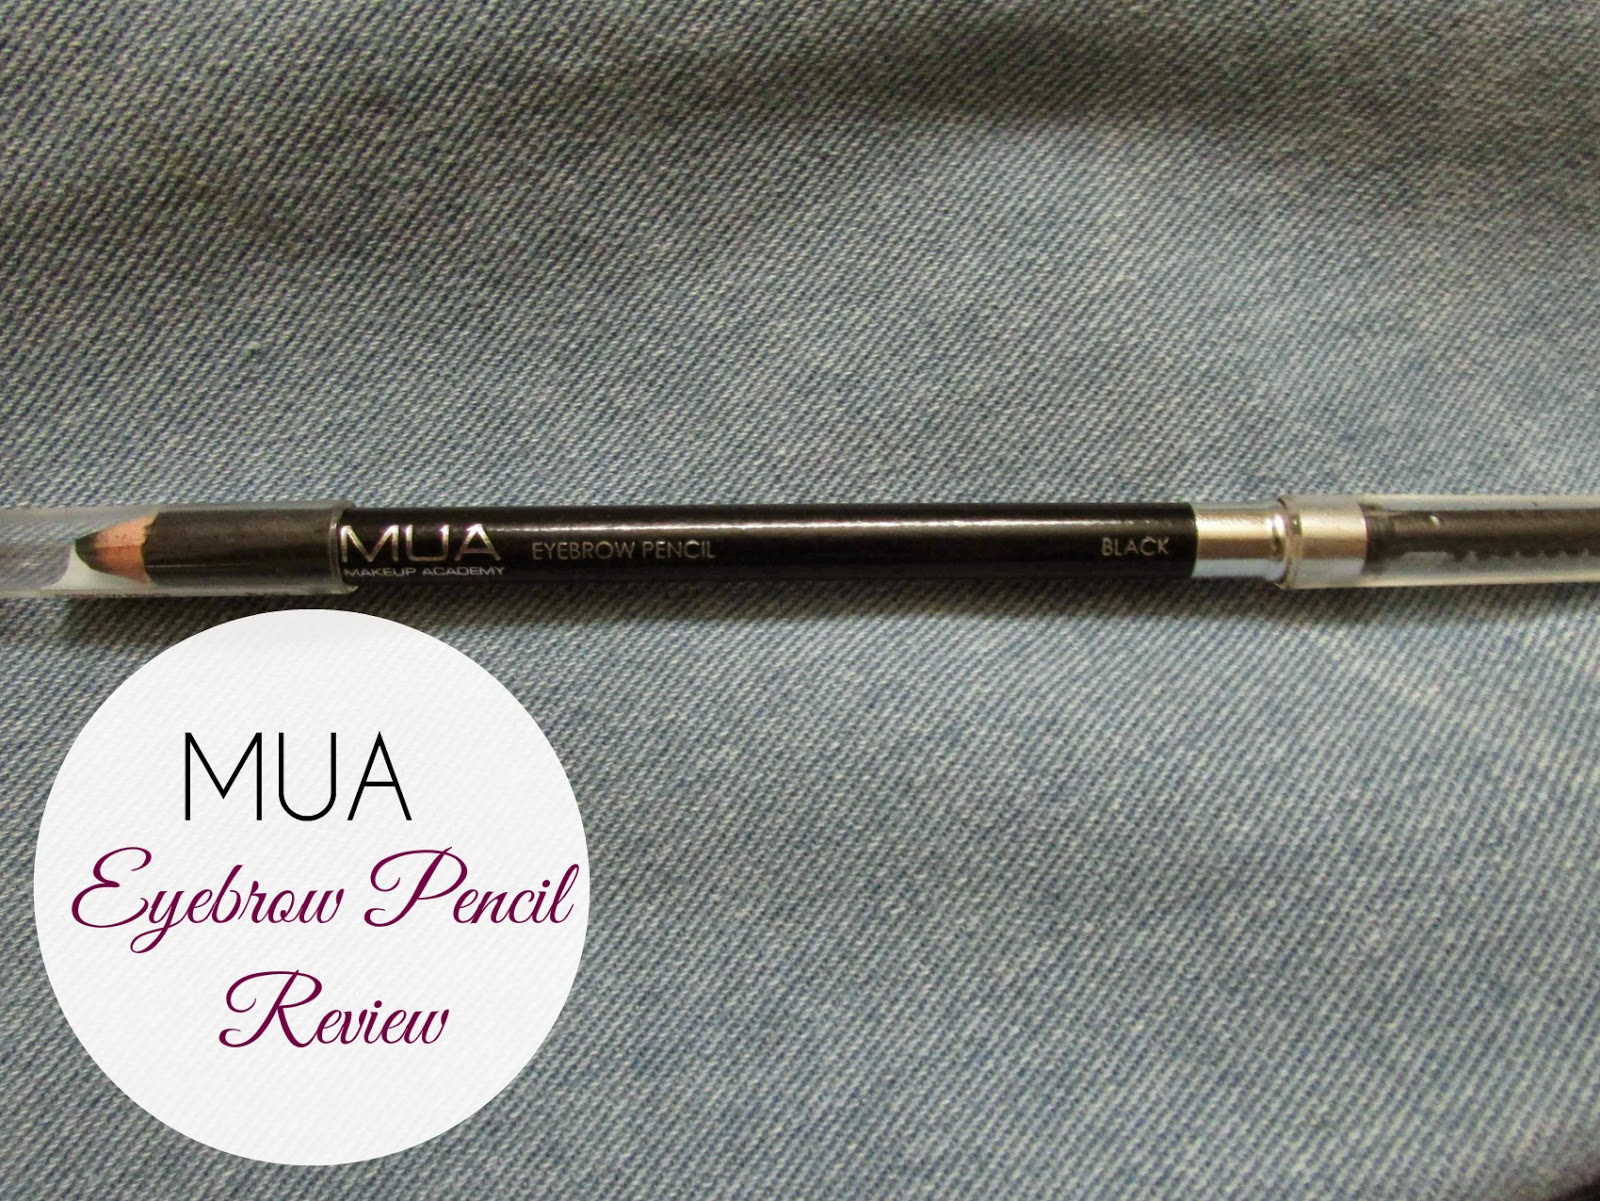 MUA Eyebrow Pencil Review , MUA Eyebrow Pencil india, MUA Eyebrow Pencil Review price, cheapest eyebrow pencil, worst makeup products, worst eyebrow pencil ever , MUA Makeup india, MUA makeup online worldwide, makeup, eyemakeup,beauty , fashion,beauty and fashion,beauty blog, fashion blog , indian beauty blog,indian fashion blog, beauty and fashion blog, indian beauty and fashion blog, indian bloggers, indian beauty bloggers, indian fashion bloggers,indian bloggers online, top 10 indian bloggers, top indian bloggers,top 10 fashion bloggers, indian bloggers on blogspot,home remedies, how to